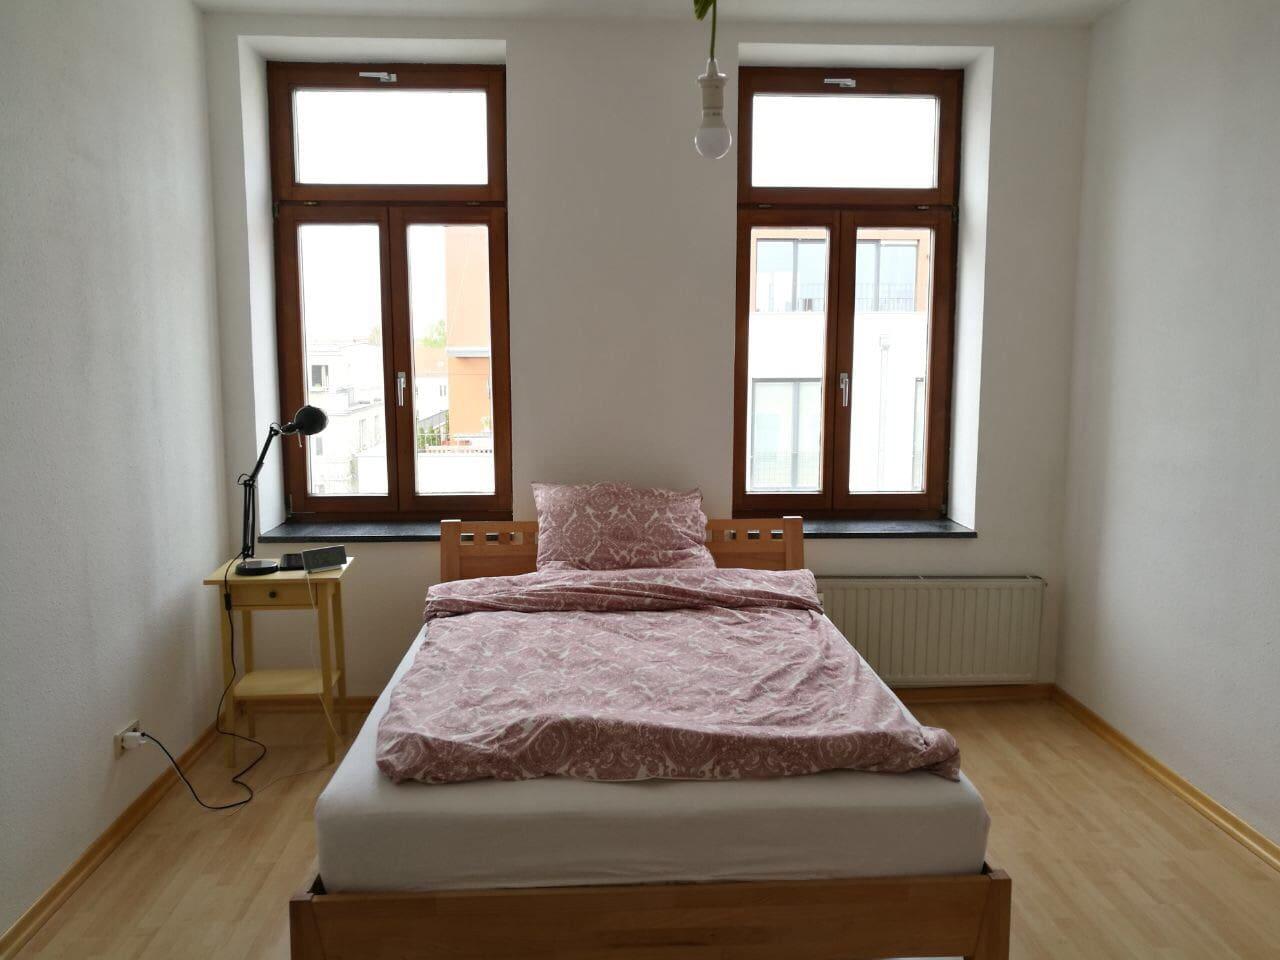 The bedroom with bedding for up to two